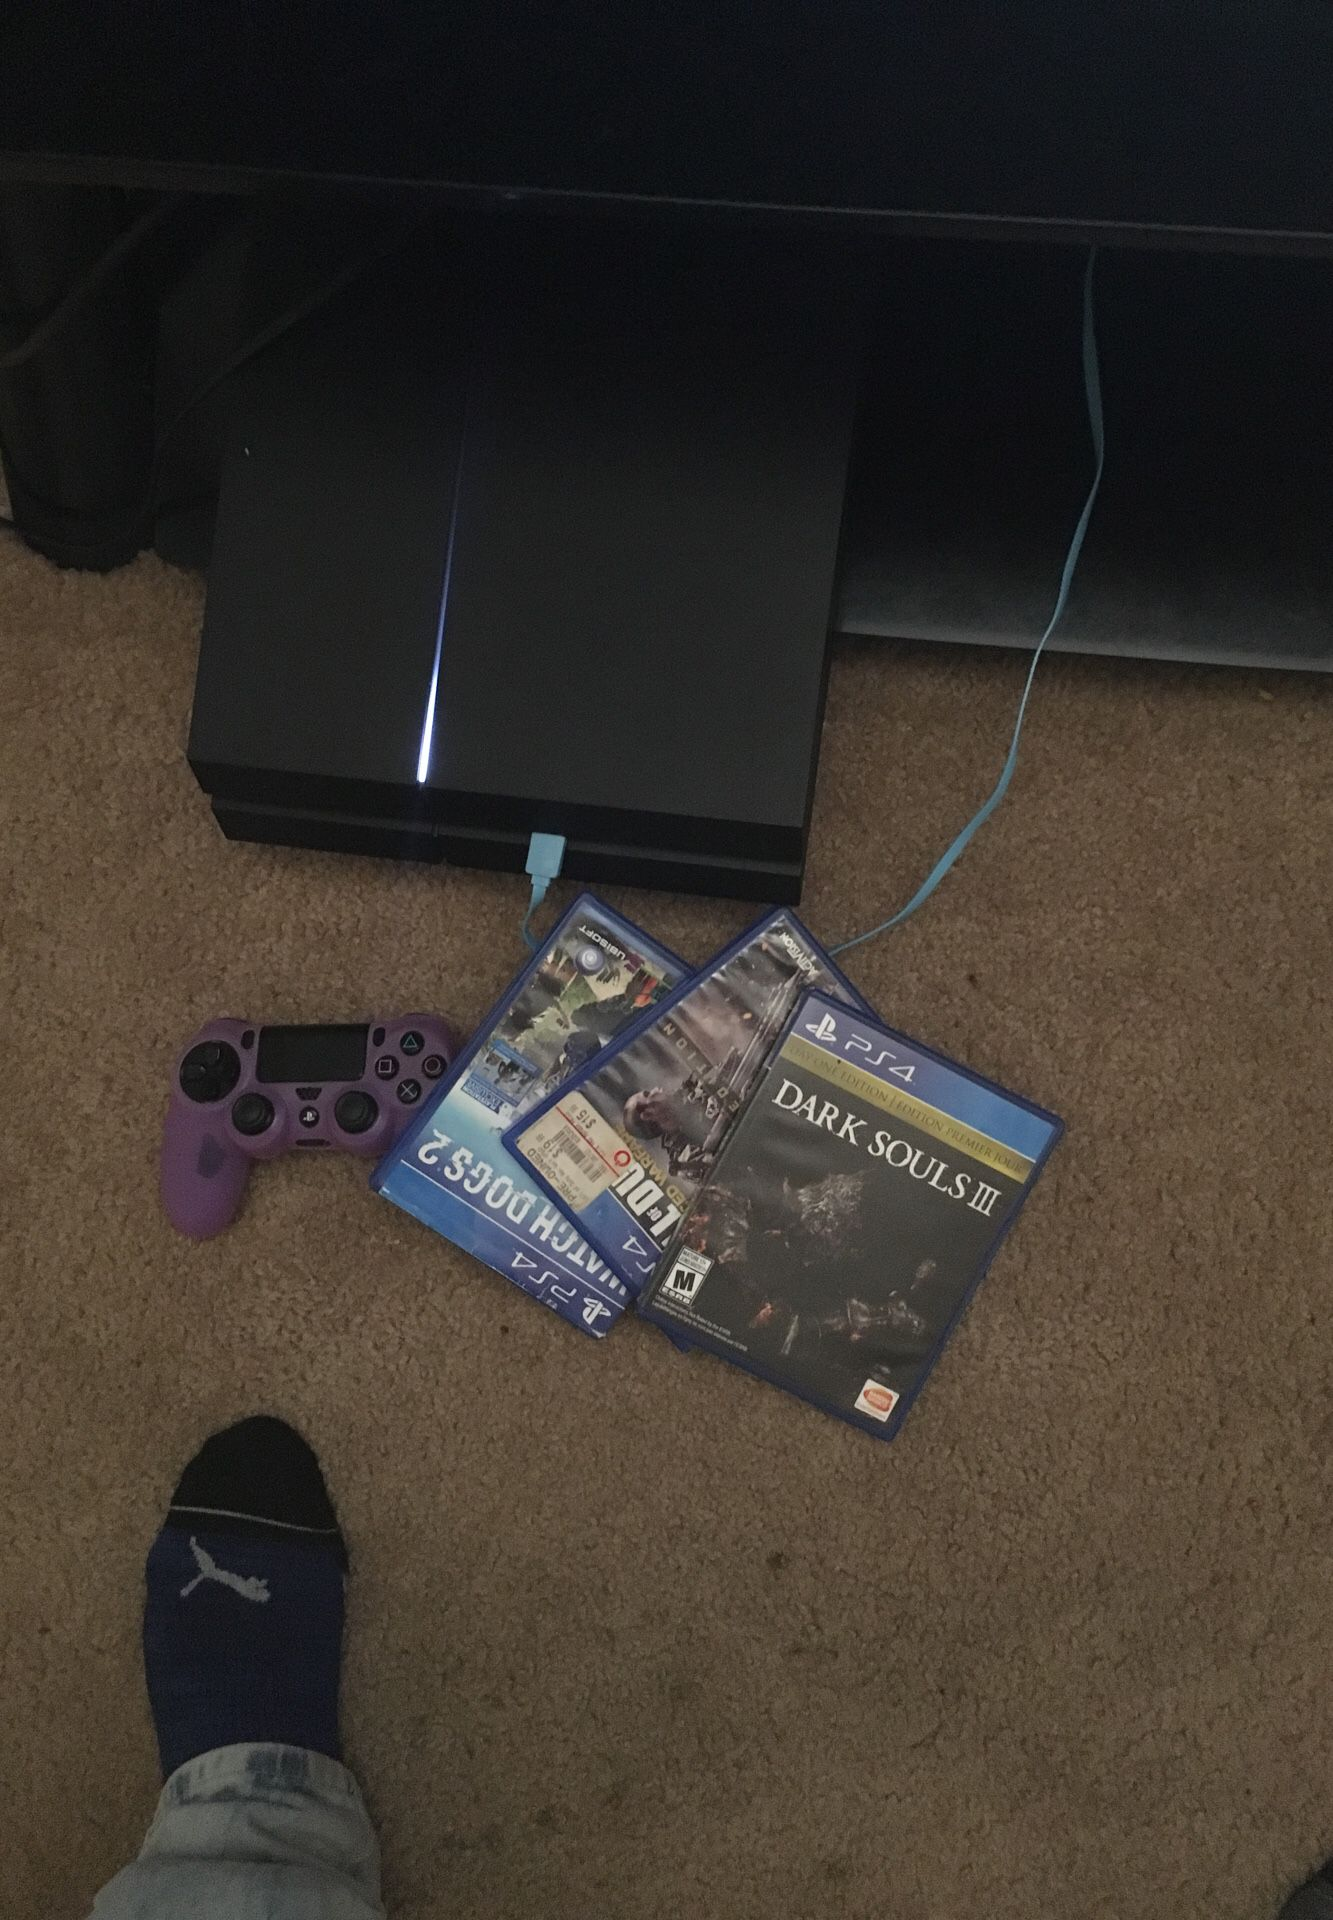 200 for 3 game and a controller.